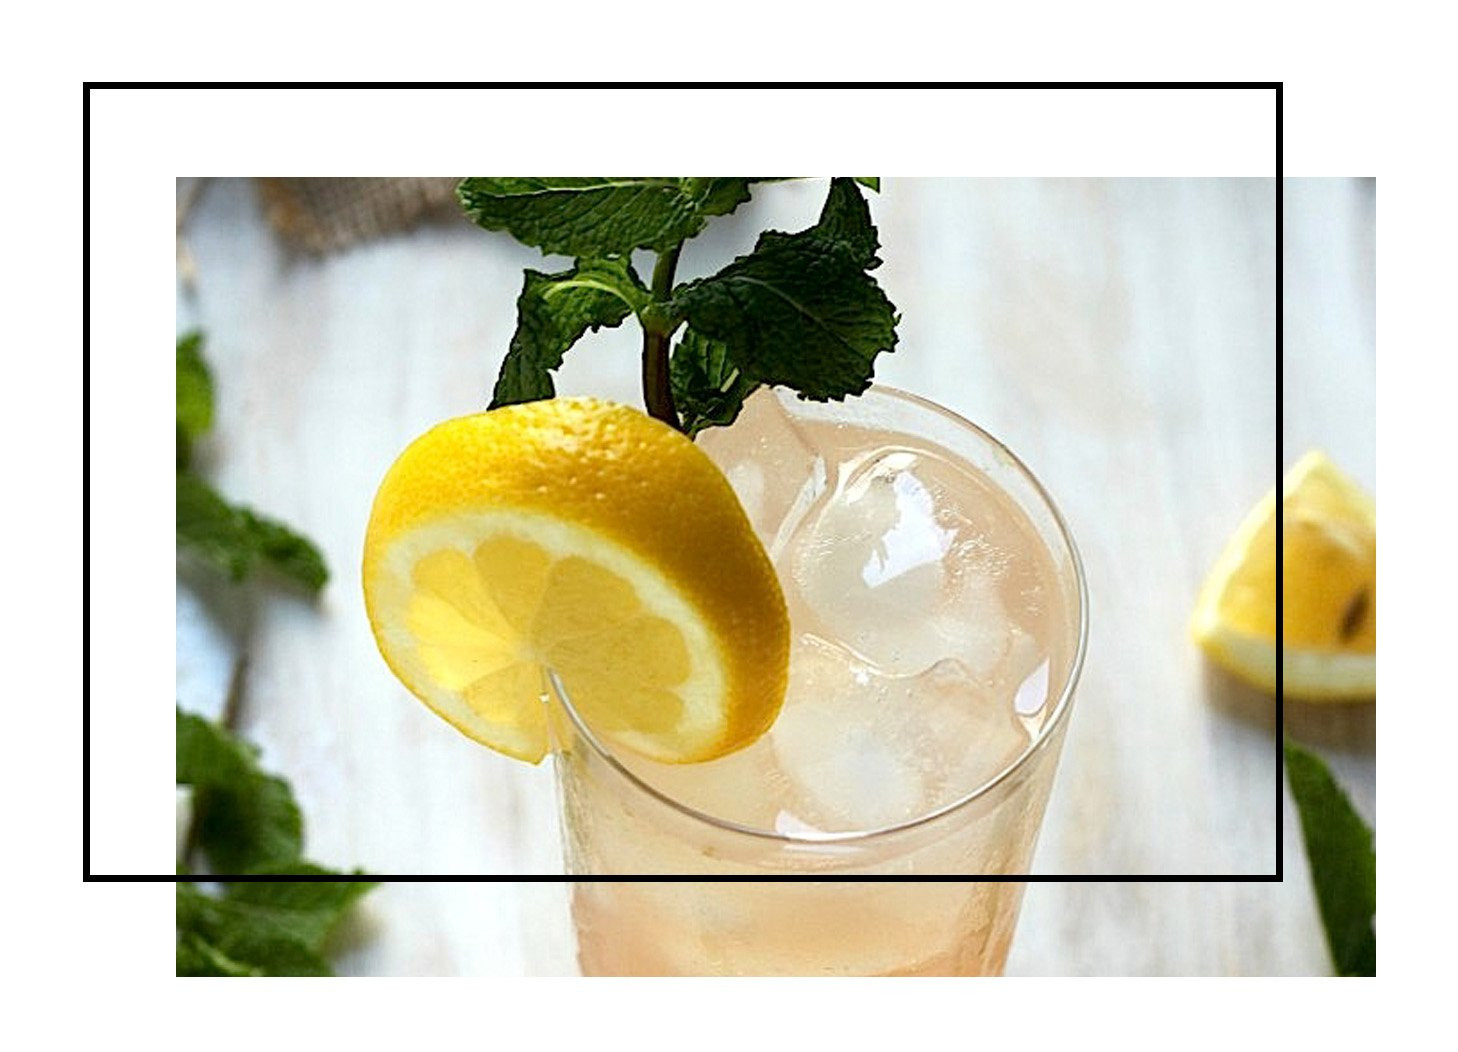 Fall Tequila Drinks  Fall Drinks The Tequila Healer – OAD NEW YORK